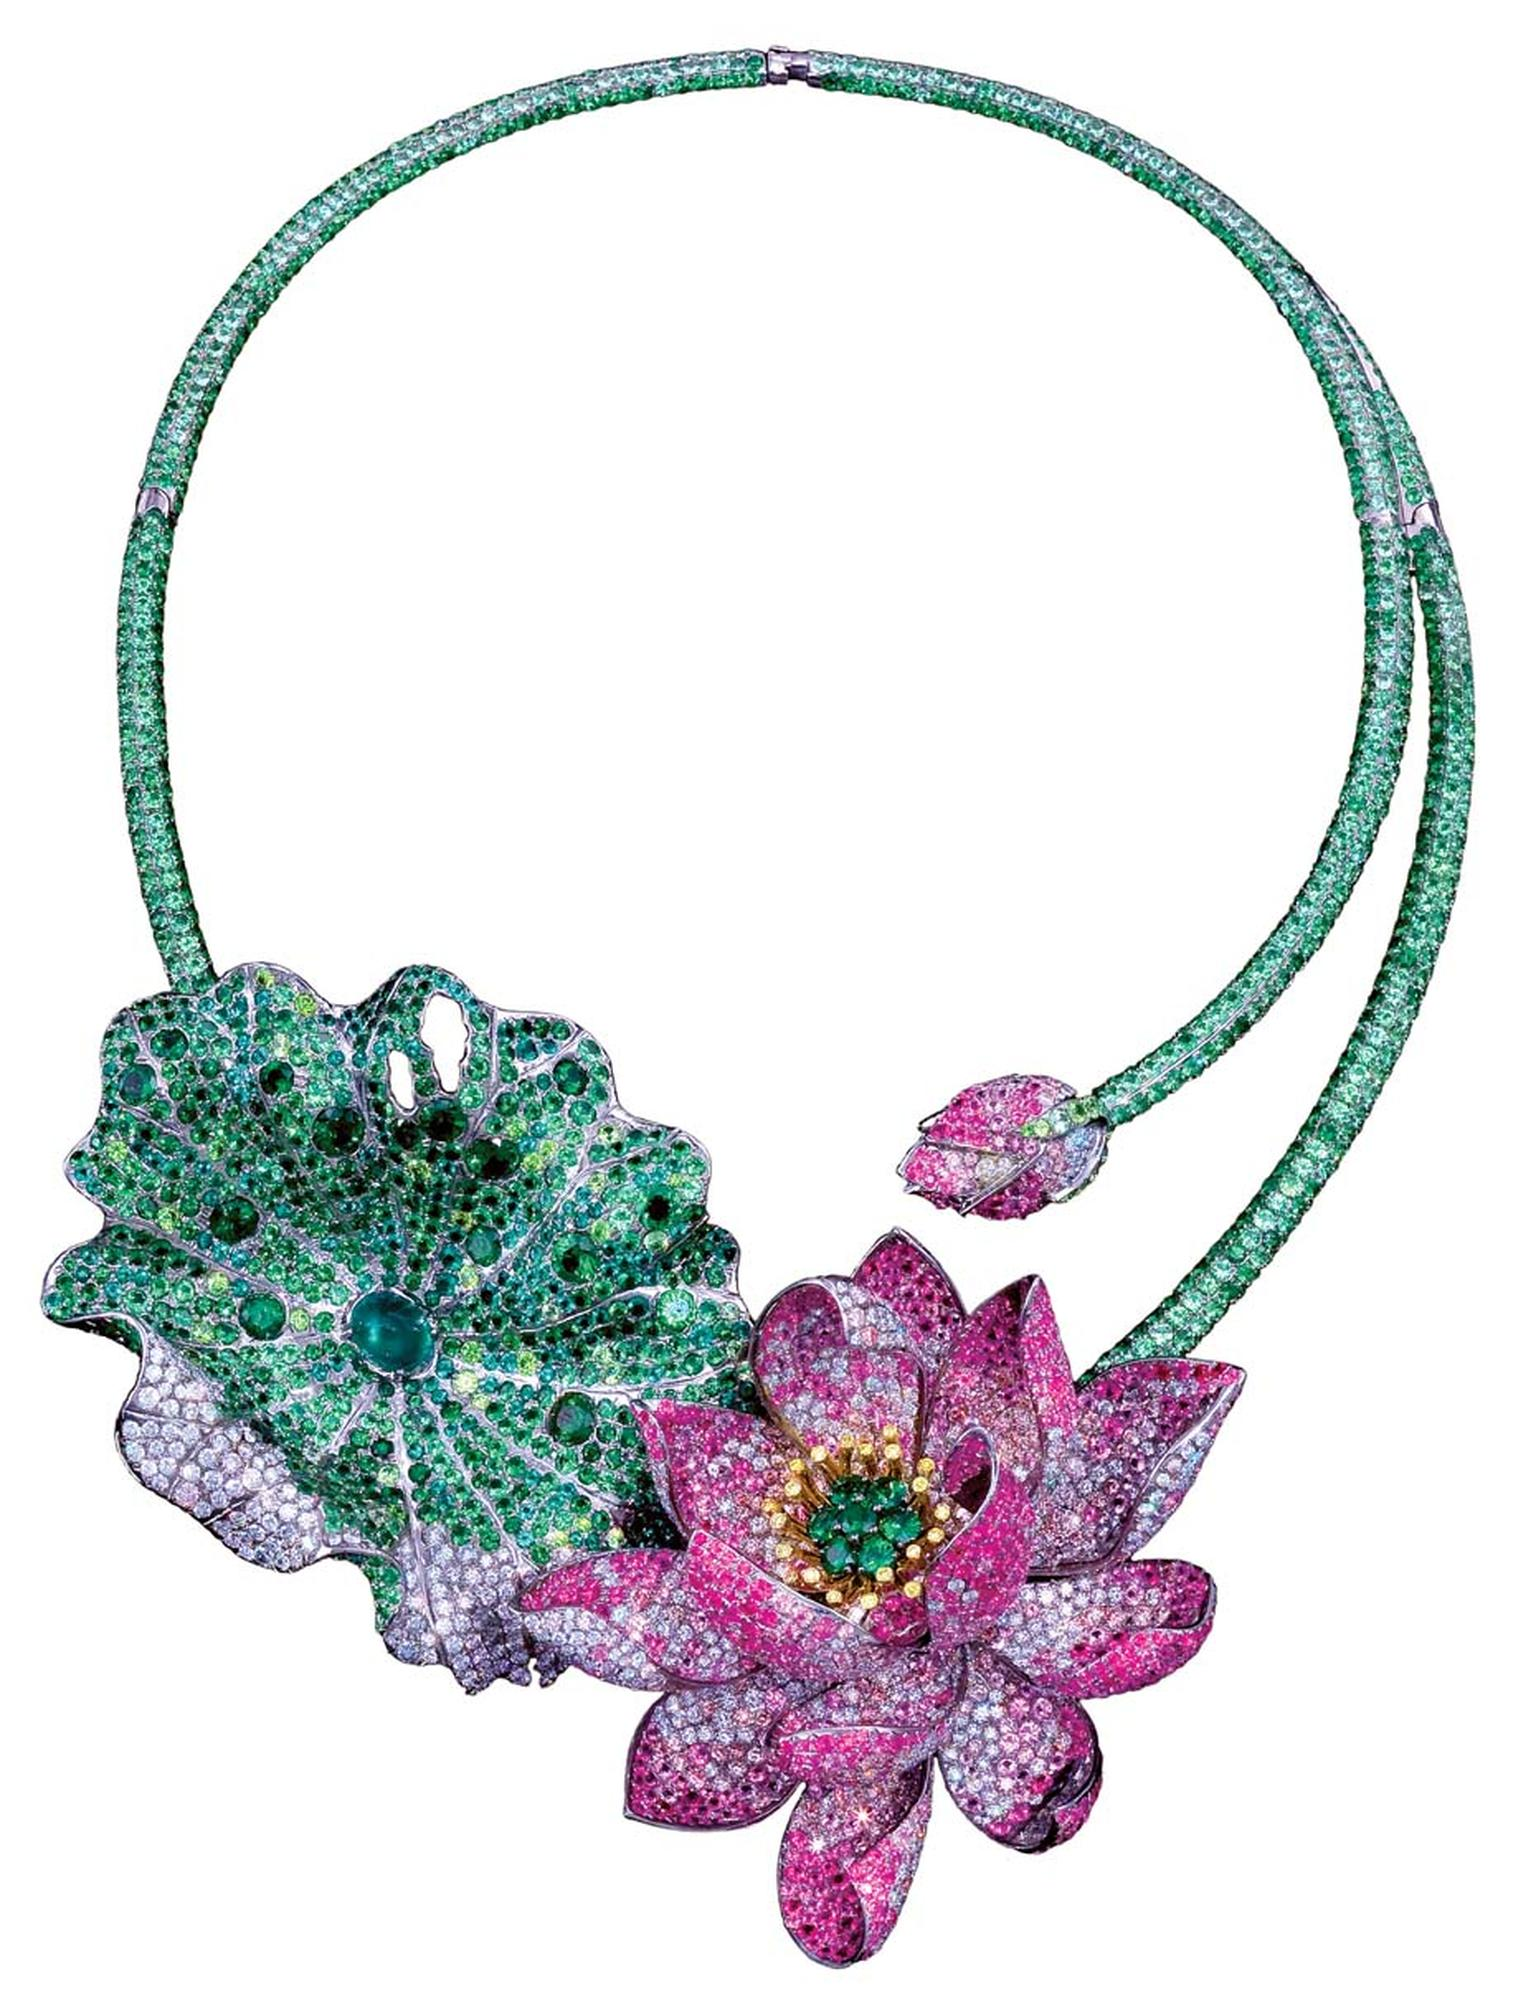 Anna Hu Art Nouveau-style Celestial Lotus necklace set with natural Fancy Intense vivid yellow, grey and white diamonds, natural Burmese rubies, Colombian emeralds, demantoid garnets, tsavorites, and multi-coloured pink sapphires in titanium.